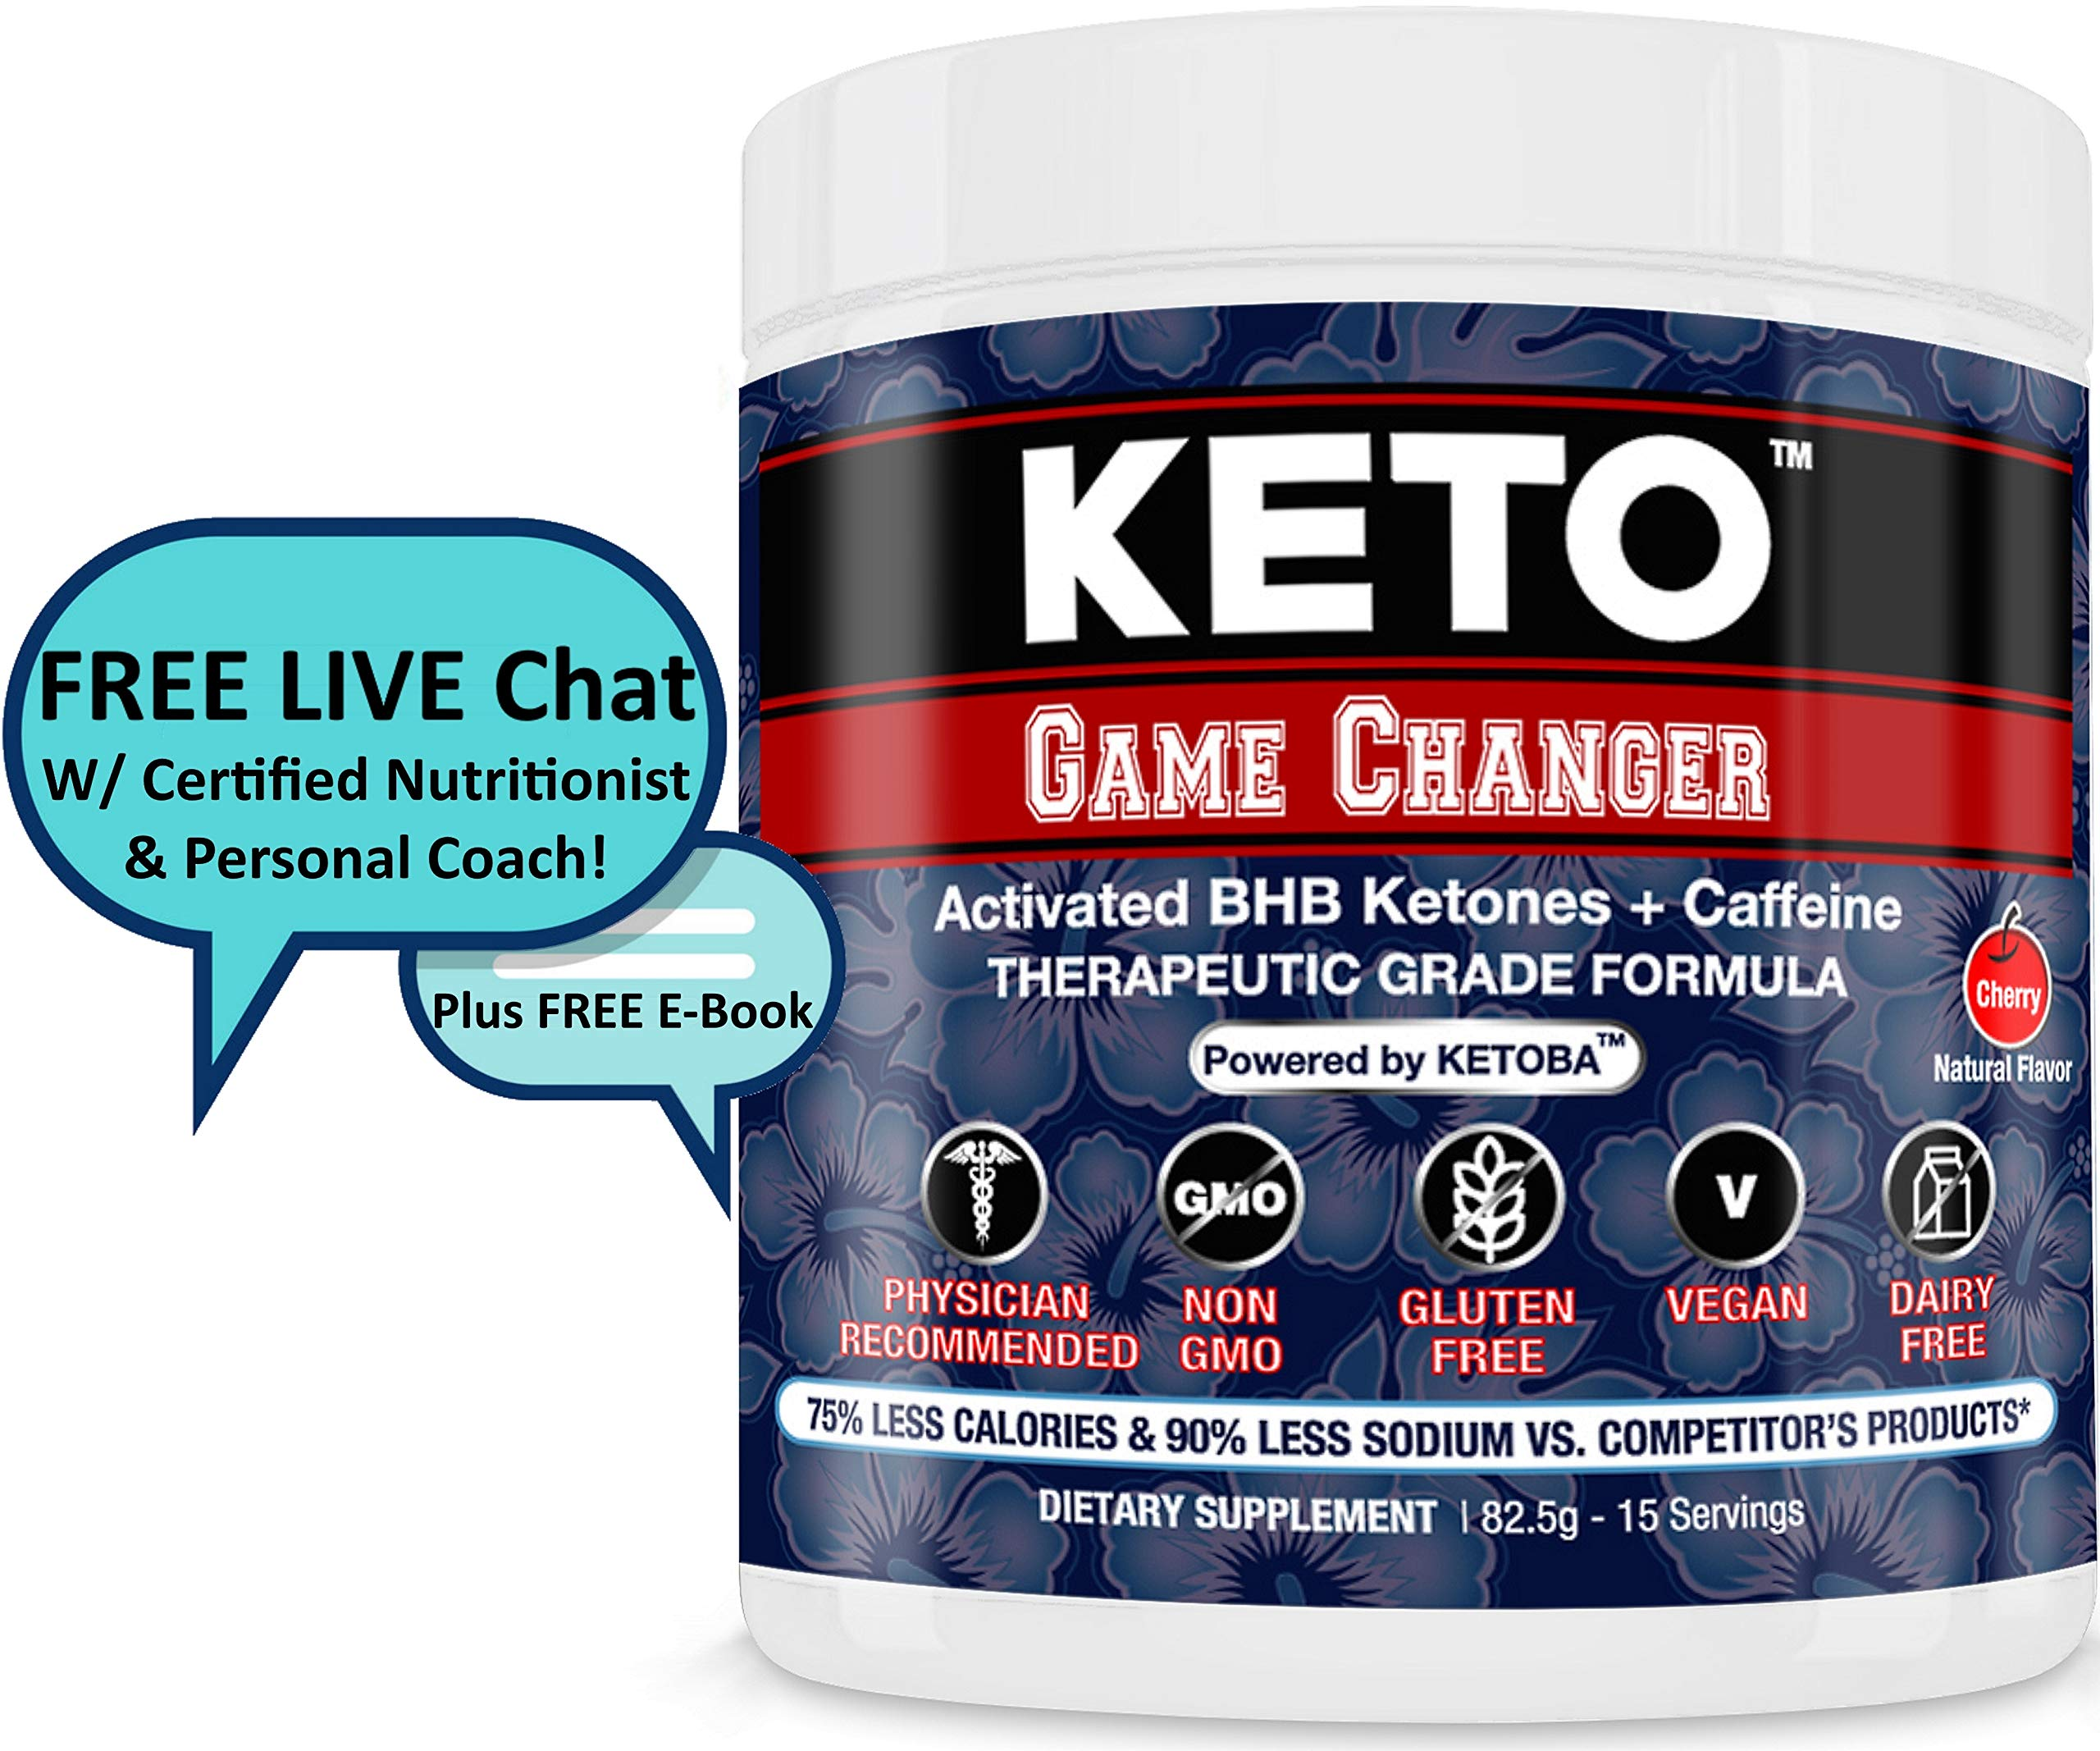 Fast BHB Keto Diet & Pre-Workout Exogenous Ketones Powder All Natural: Drink/Shakes/Snack | Weight Loss/Energy/Low Carb/NO Keto Flu | Paleo,Atkins,Diabetes-Ketogenic Drive,Ketosis Booster,Supplement by Scotternity